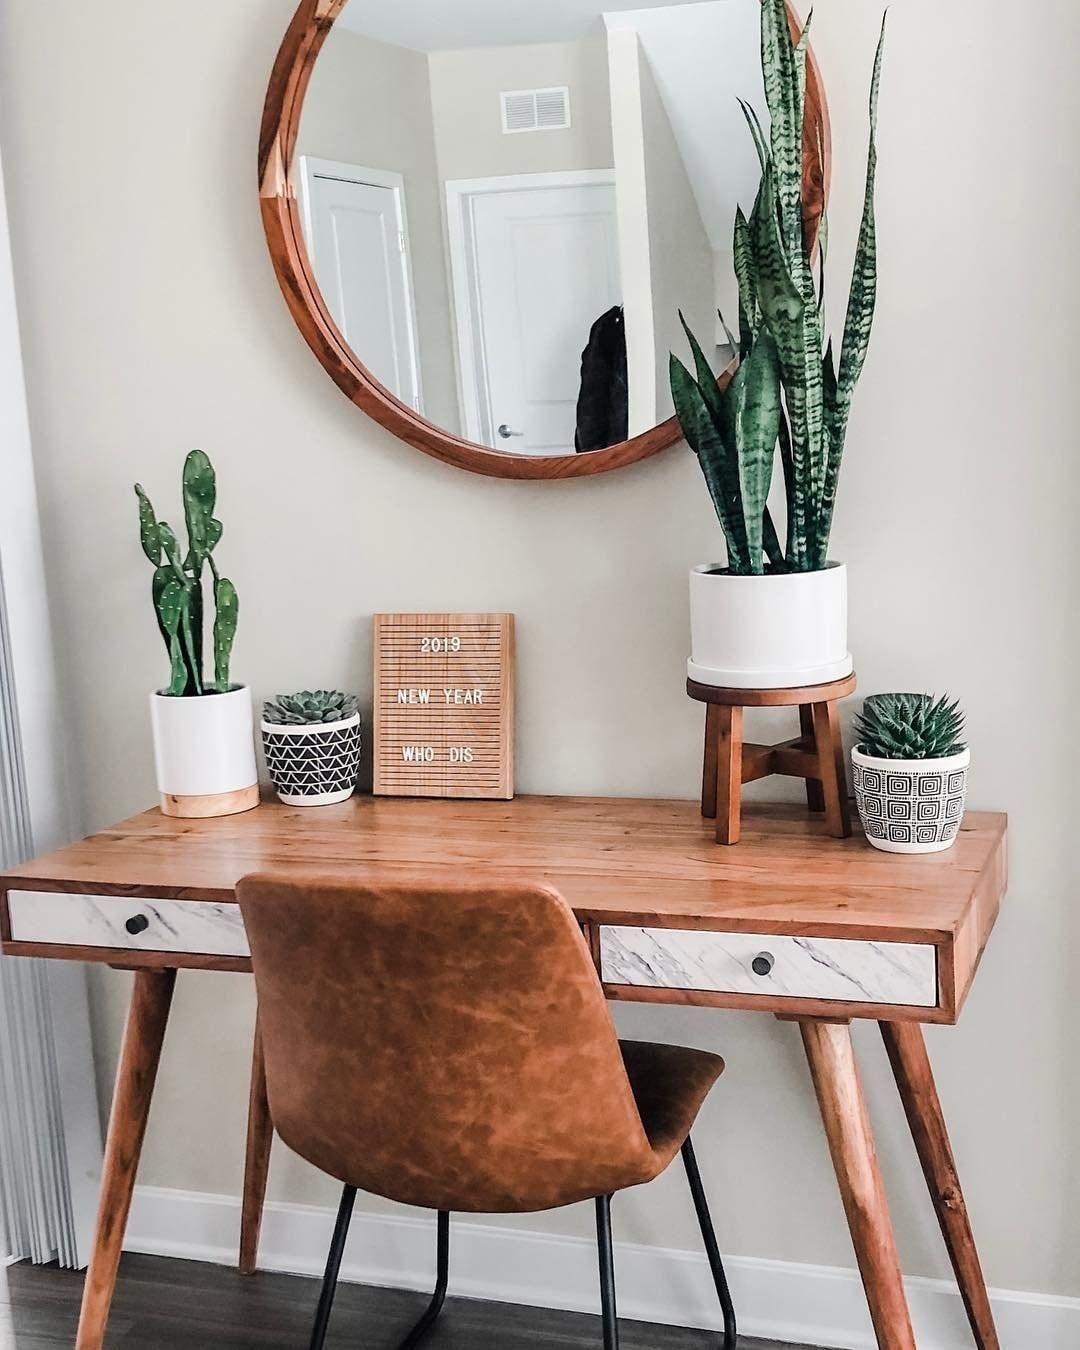 """HomeGoods on Instagram: """"Let's get down to business! Chelsea and Chloe, from @onedreamtwosisters, found a sleek wooden desk with marble accents at their HomeGoods.…"""""""